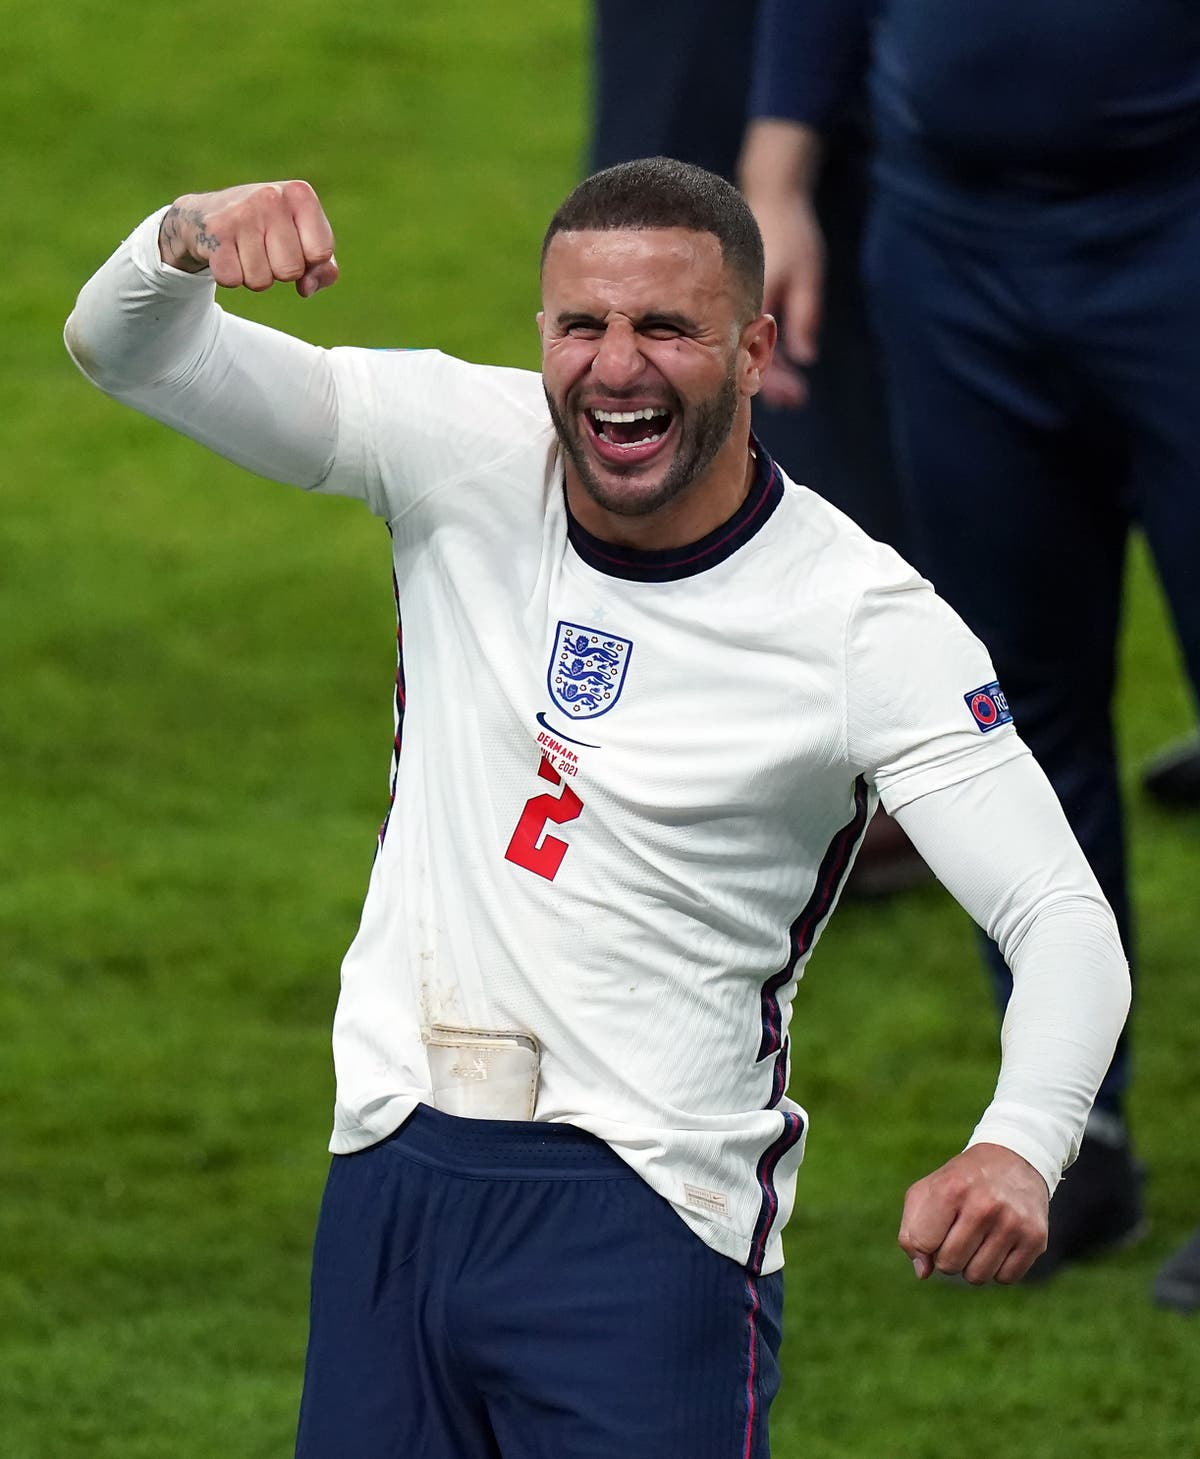 Kyle Walker an inspiration at youth club which set him on way to England stardom